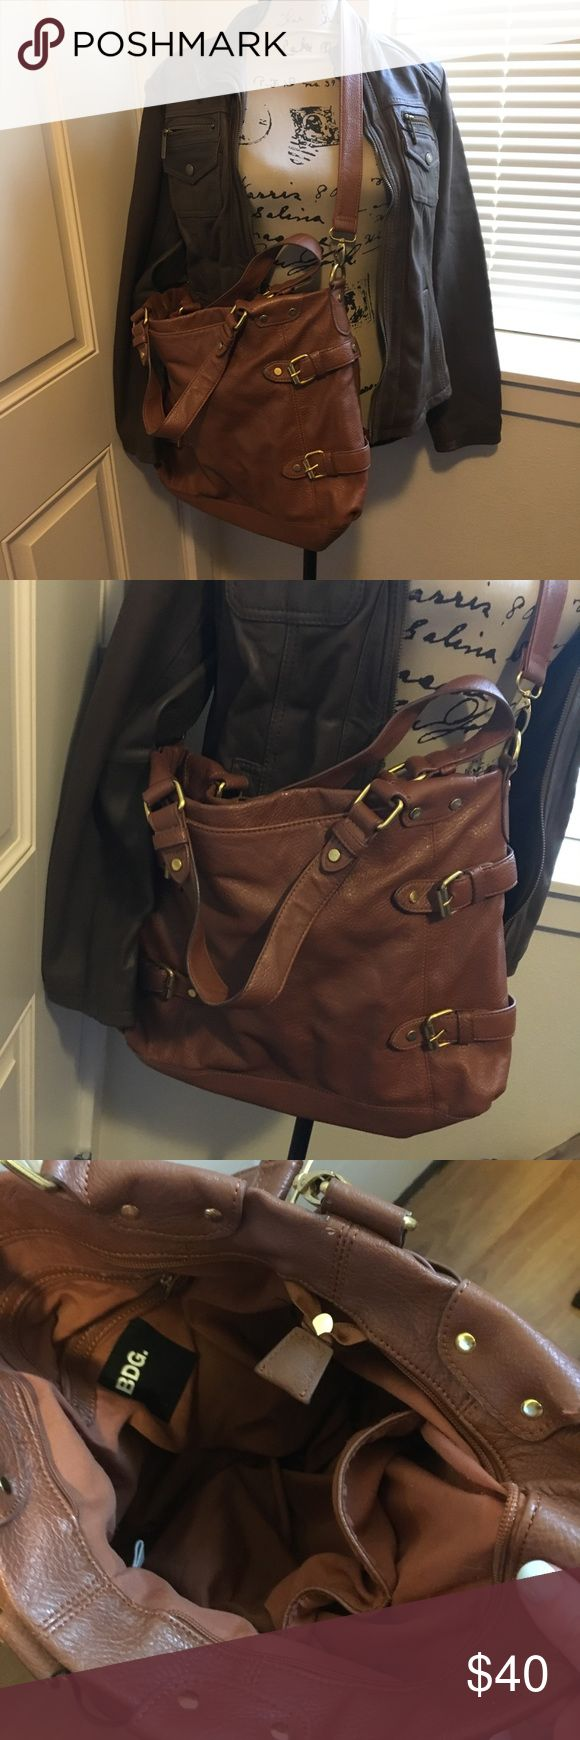 BDG FAUX LEATHER PURSE BDG faux leather bag with long strap and short handles. BDG Bags Crossbody Bags